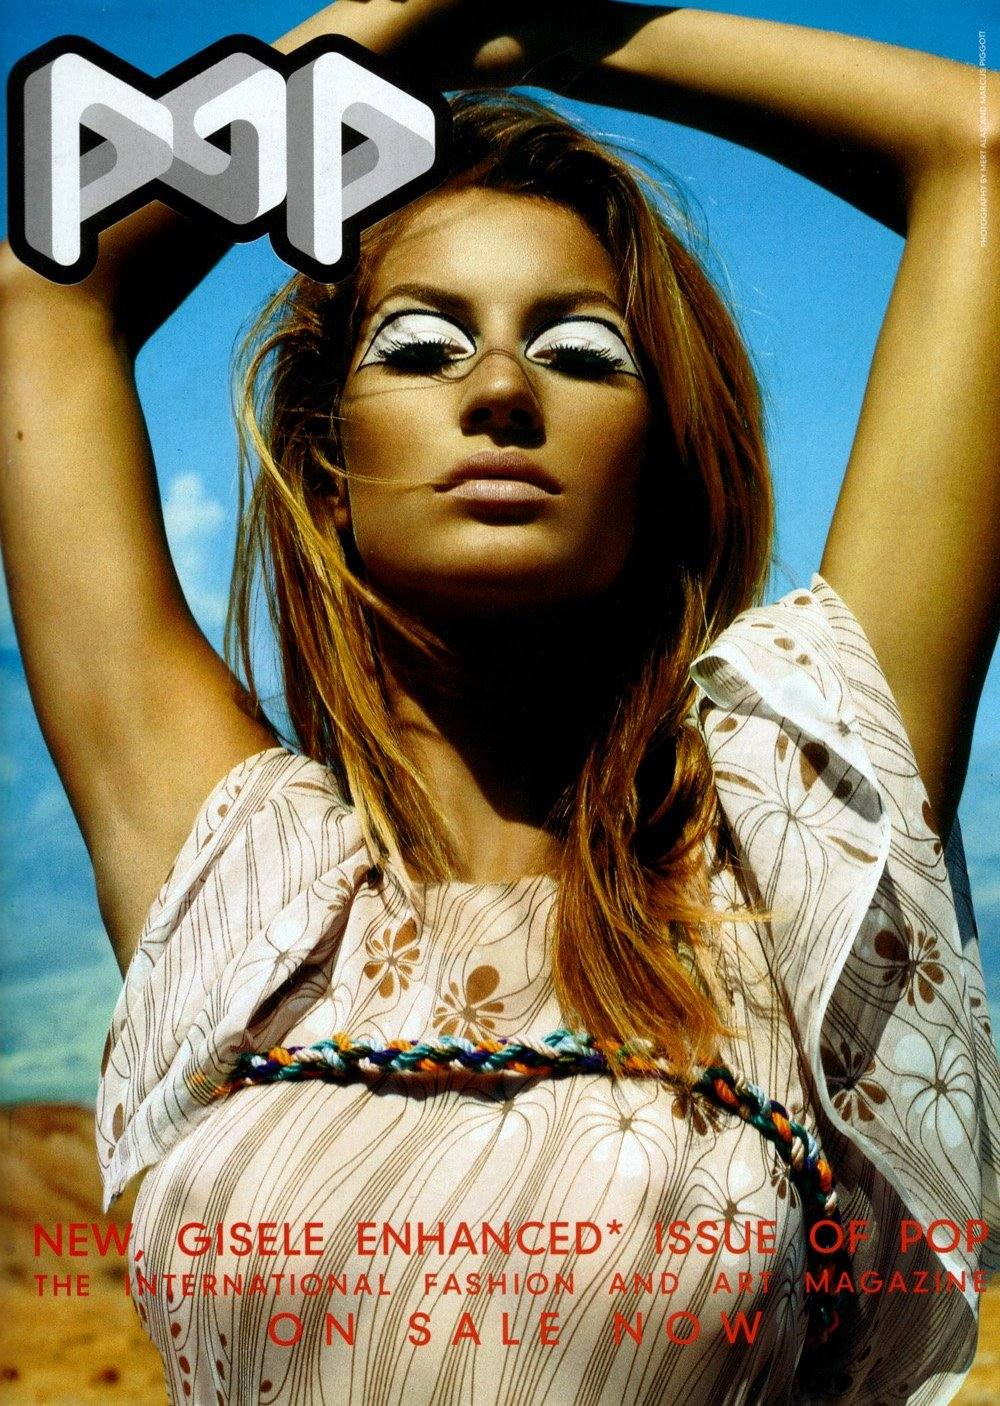 gisele-bc3bcndchen-by-mert-alas-marcus-piggott-for-pop-magazine-fallwinter-2001-12